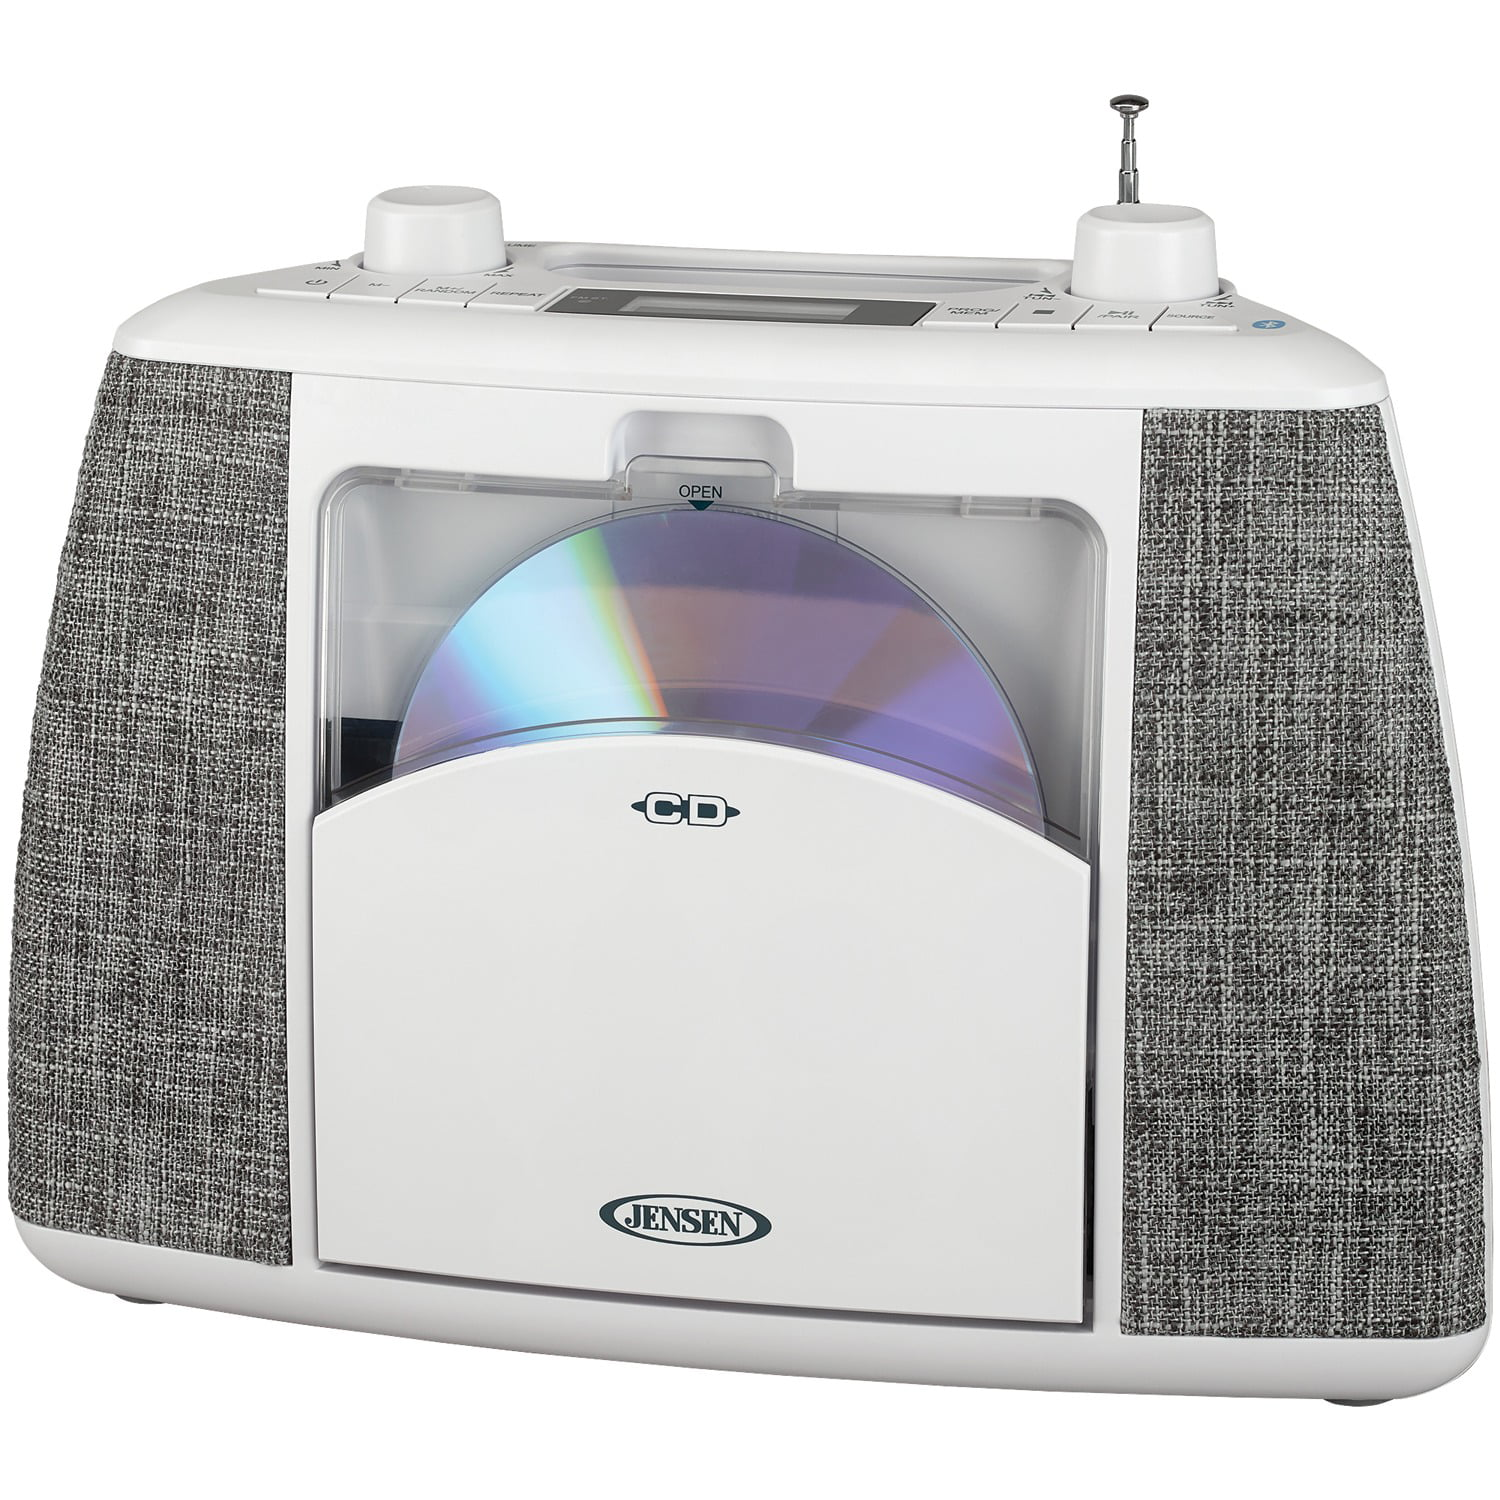 JENSEN Portable Bluetooth CD Music System - White (CD-565)